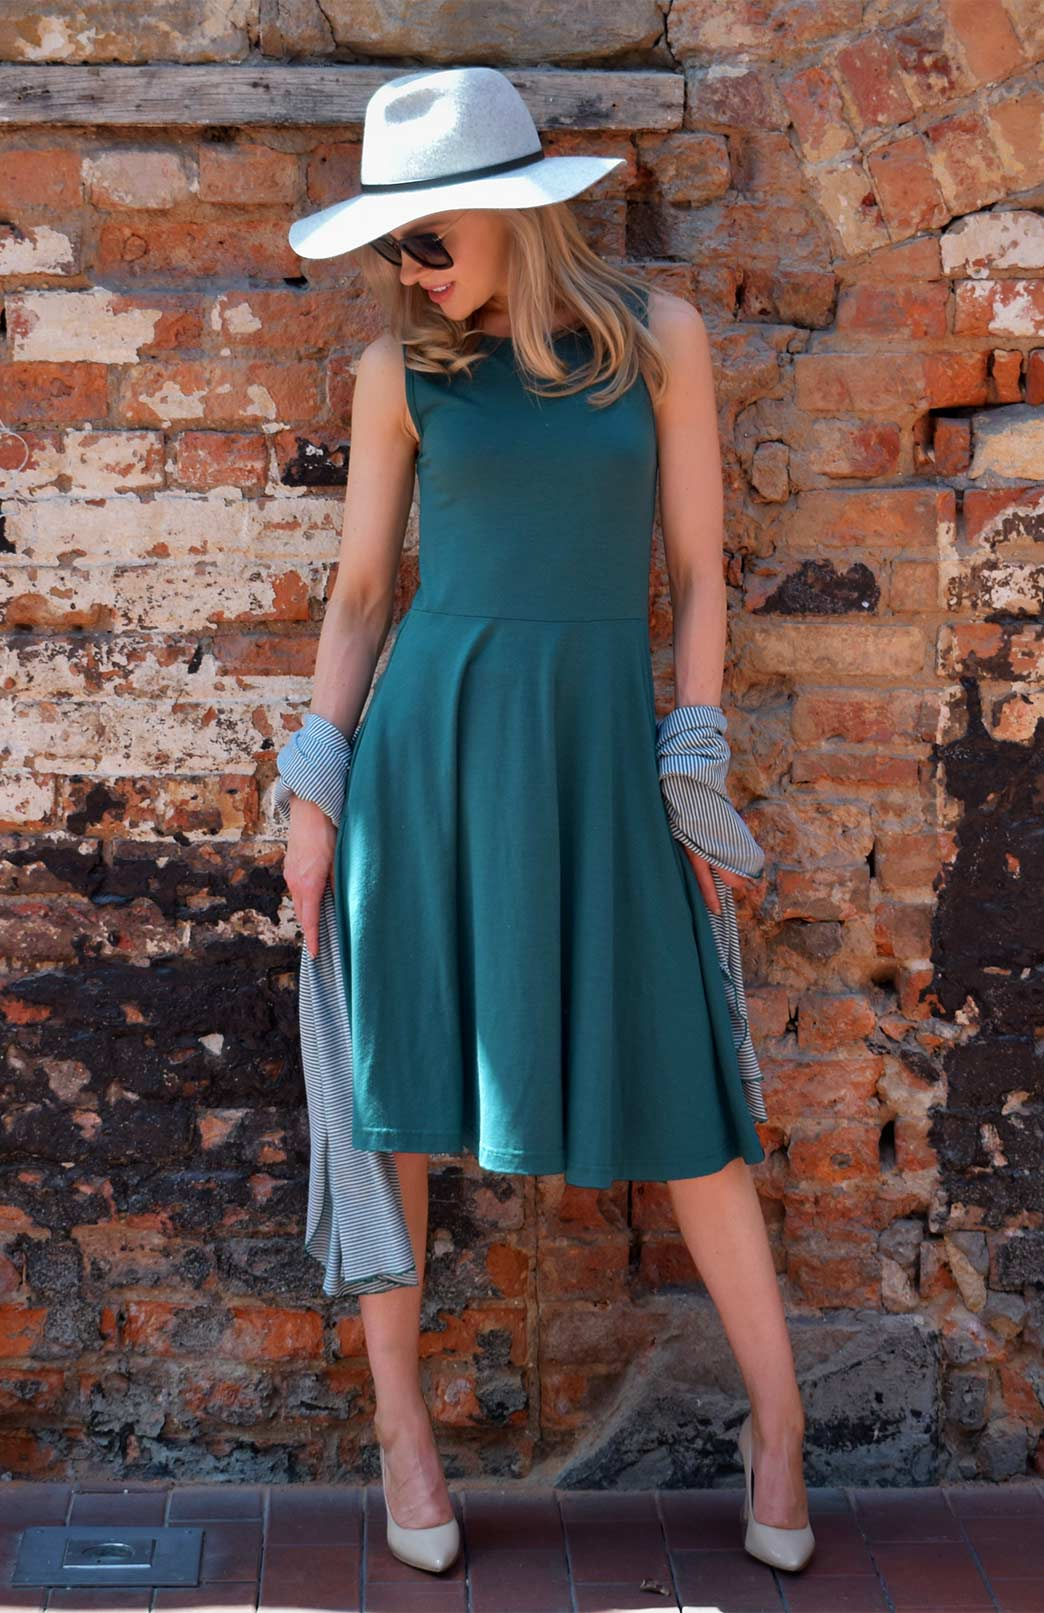 fee9ca3727706 MaryAnn Fit and Flare Dress - Women s Emerald Green Merino Wool Sleeveless  Dress with Pockets -. Enlarge